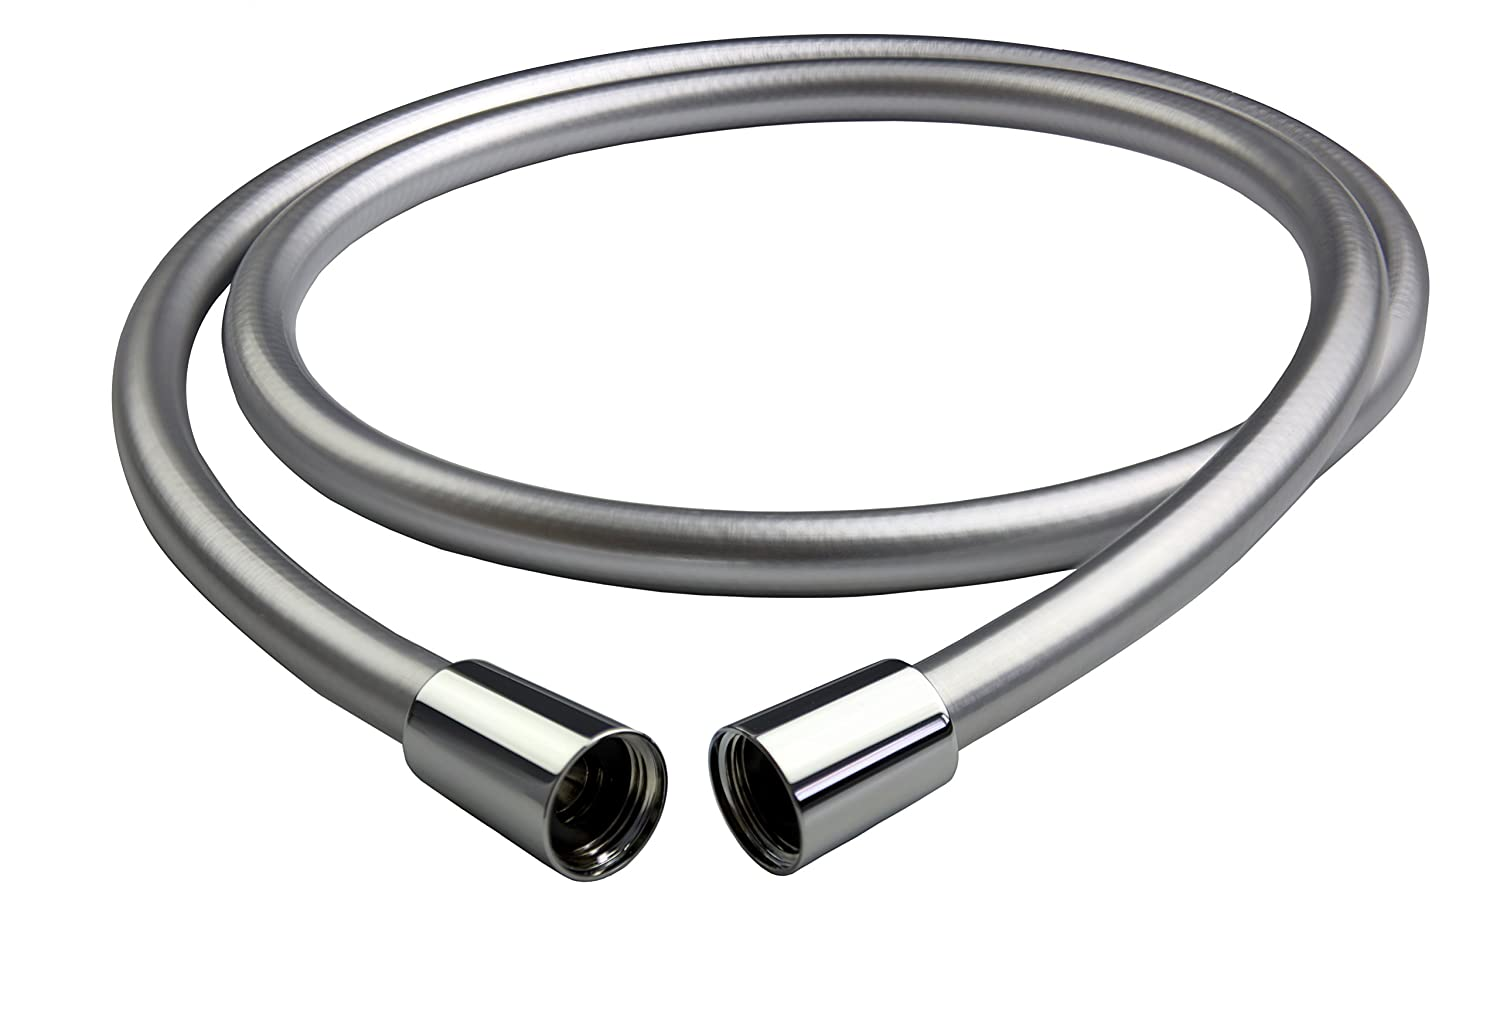 Triton Showers TSHM150S 1.5M Smooth Hose Chrome, 1.5 m